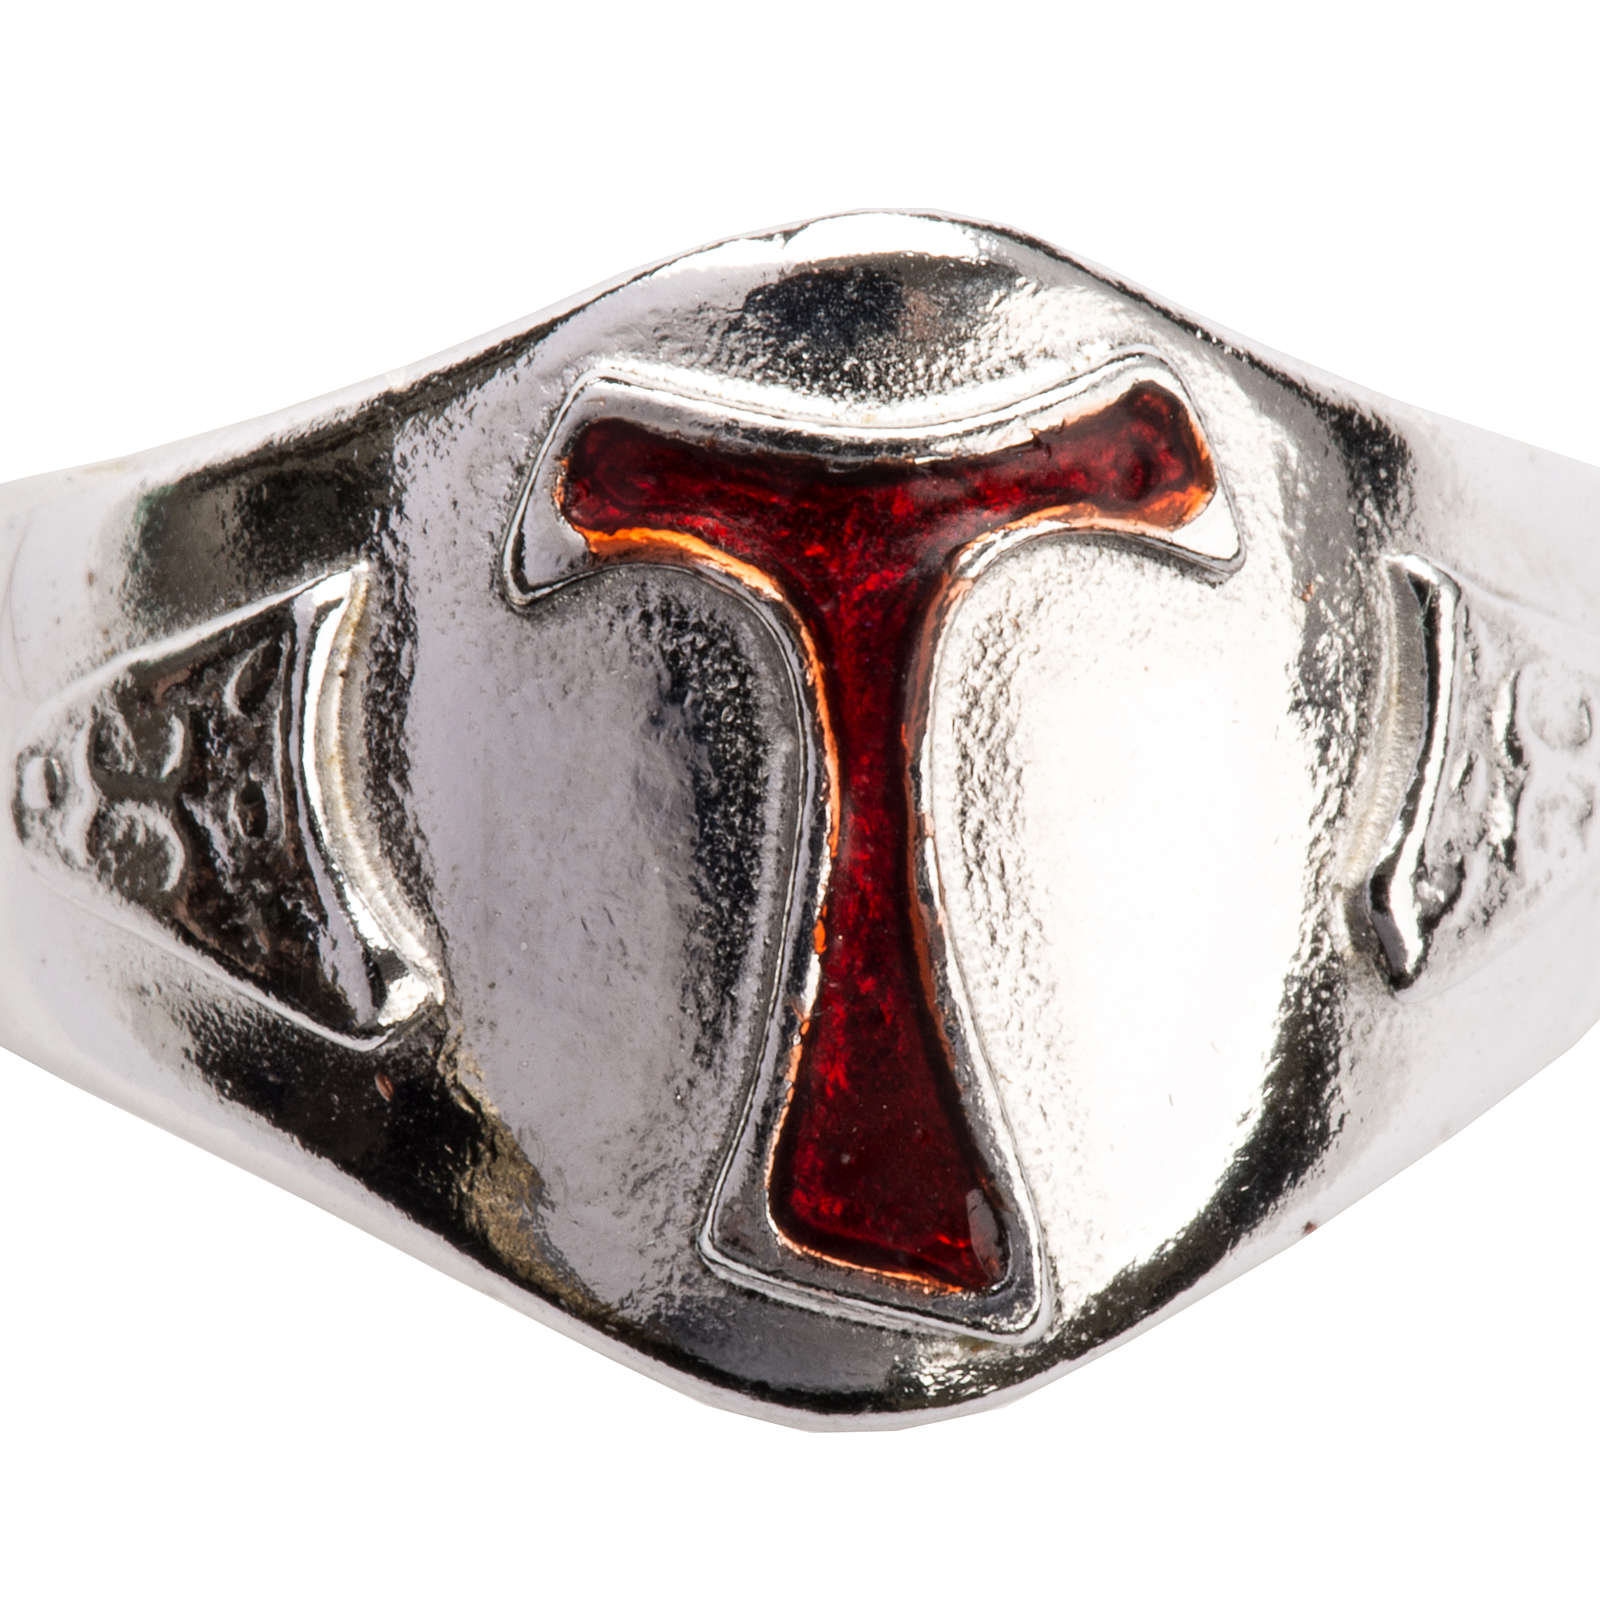 Bishop's Ring in silver 925, Enamel Tau 3